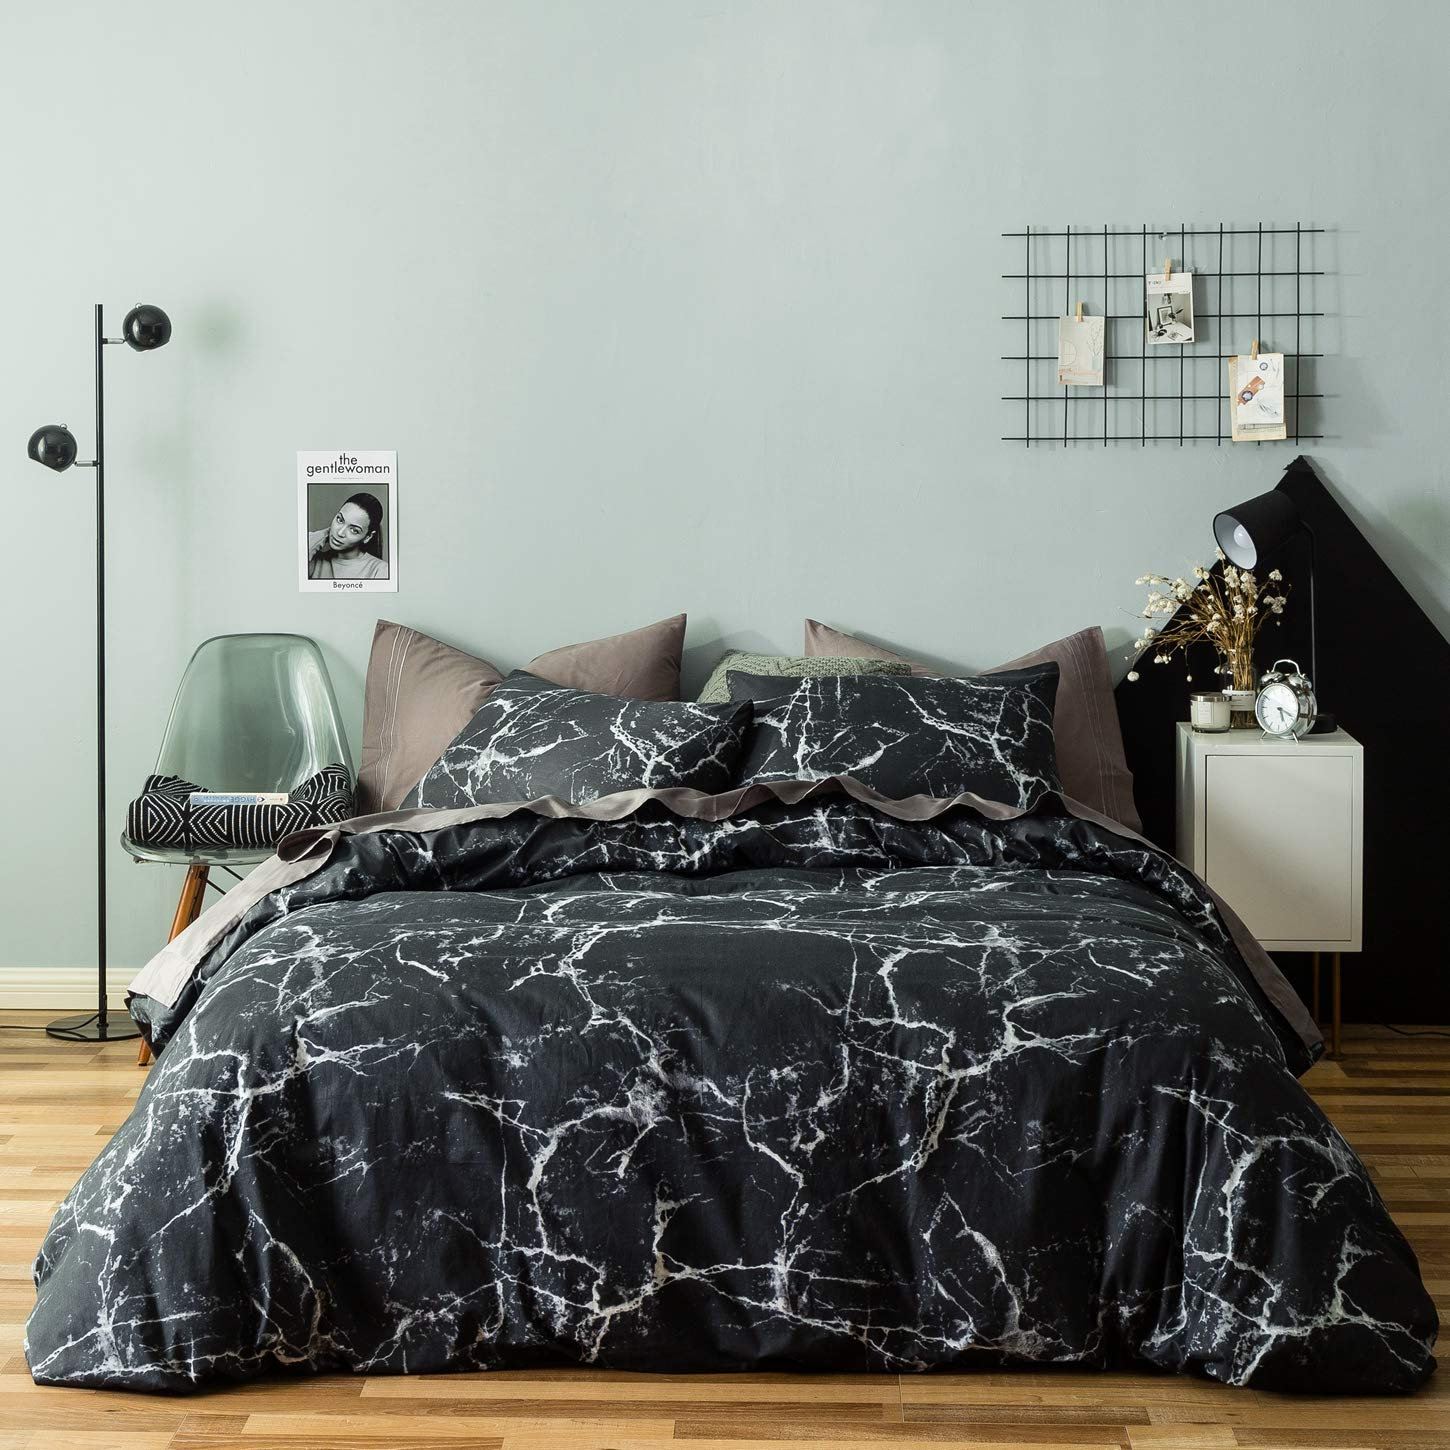 SUSYBAO 3 Pieces Duvet Cover Set 100% Natural Cotton Queen Size Black and White Marble Abstract Print Bedding with Zipper Ties 1 Duvet Cover 2 Pillowcases Luxury Quality Soft Comfortable Easy Care